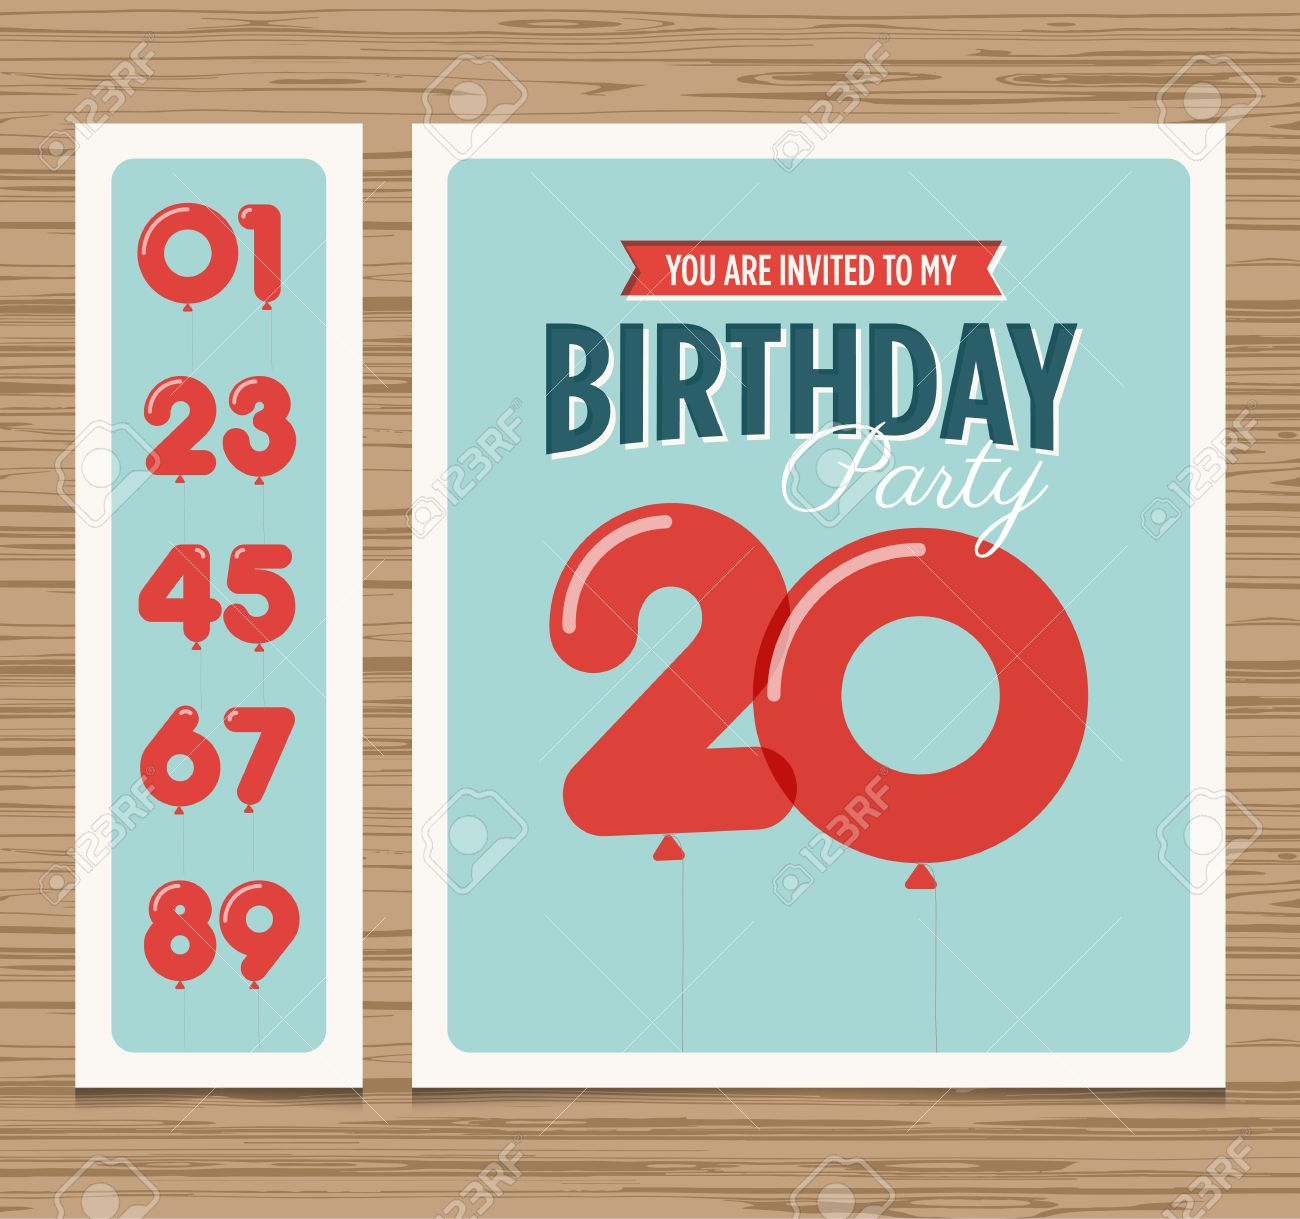 Birthday Party Invitation Card Balloons Numbers Vector Design